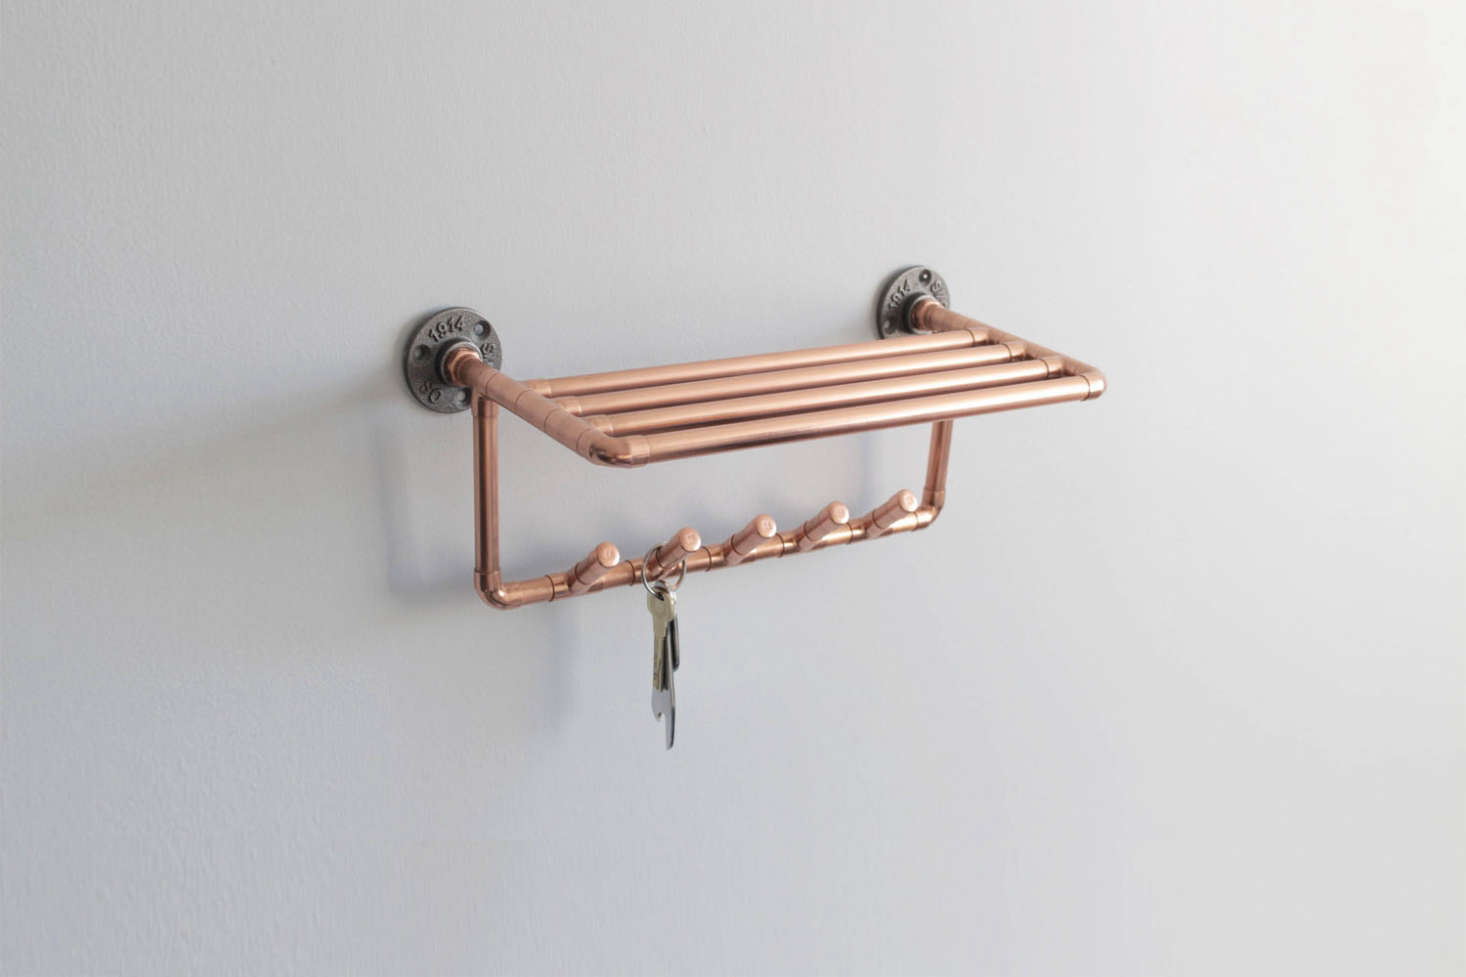 From the Copper Works on Etsy, the Copper Coat Hook Shelf is $60.69.